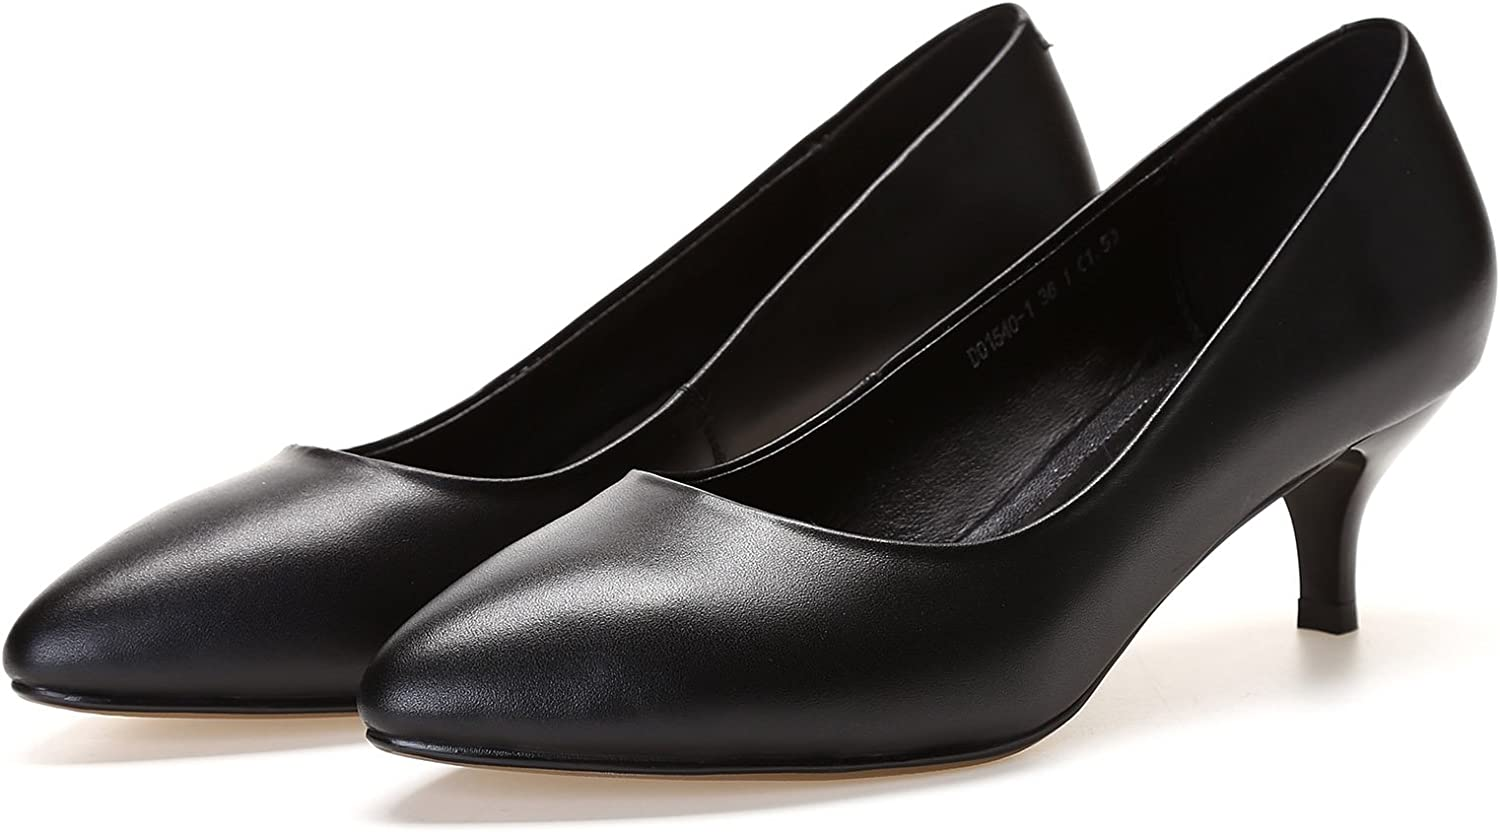 Women's Classic Pointed Toe Work Pumps Heel shoes Black